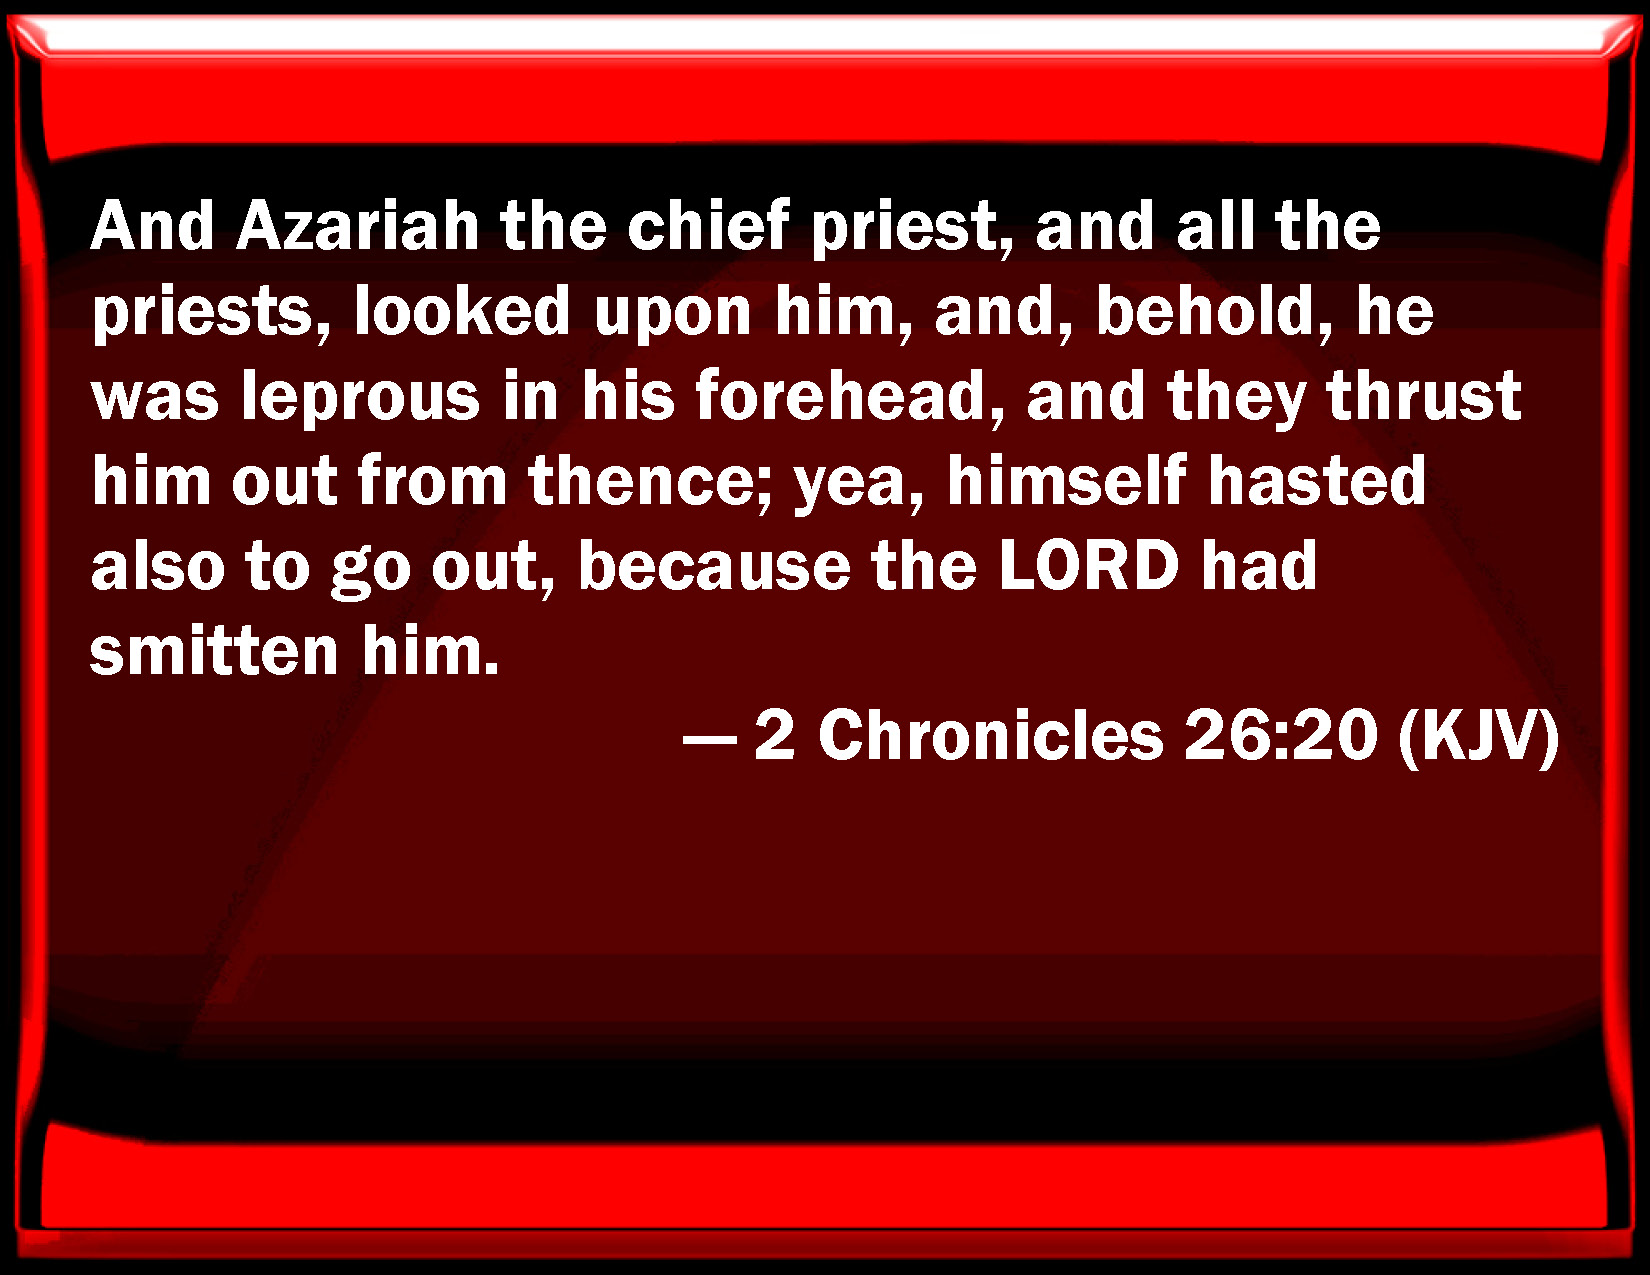 2 Chronicles 26:20 And Azariah the chief priest, and all the priests